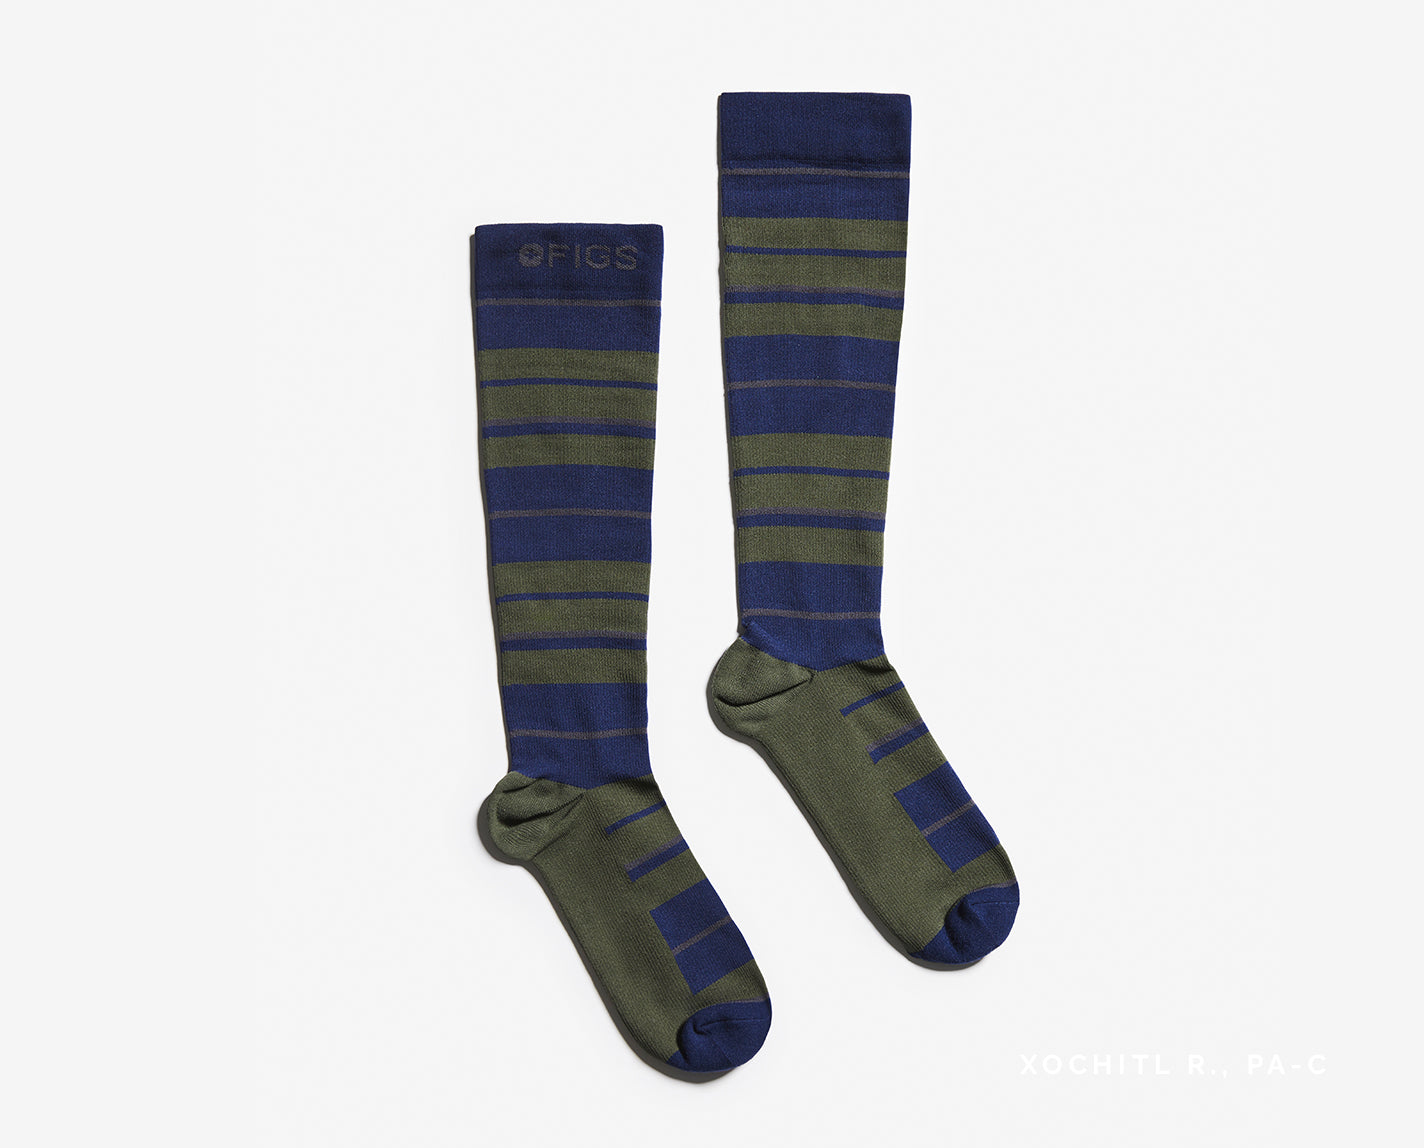 You've earned these stripes. Our 100% Awesome Compression Socks are what feet dreams are made of – they help to relieve tired and achy legs. Plus, they're breathable, ridiculously soft and feature our proprietary FIONdry moisture-wicking technology.